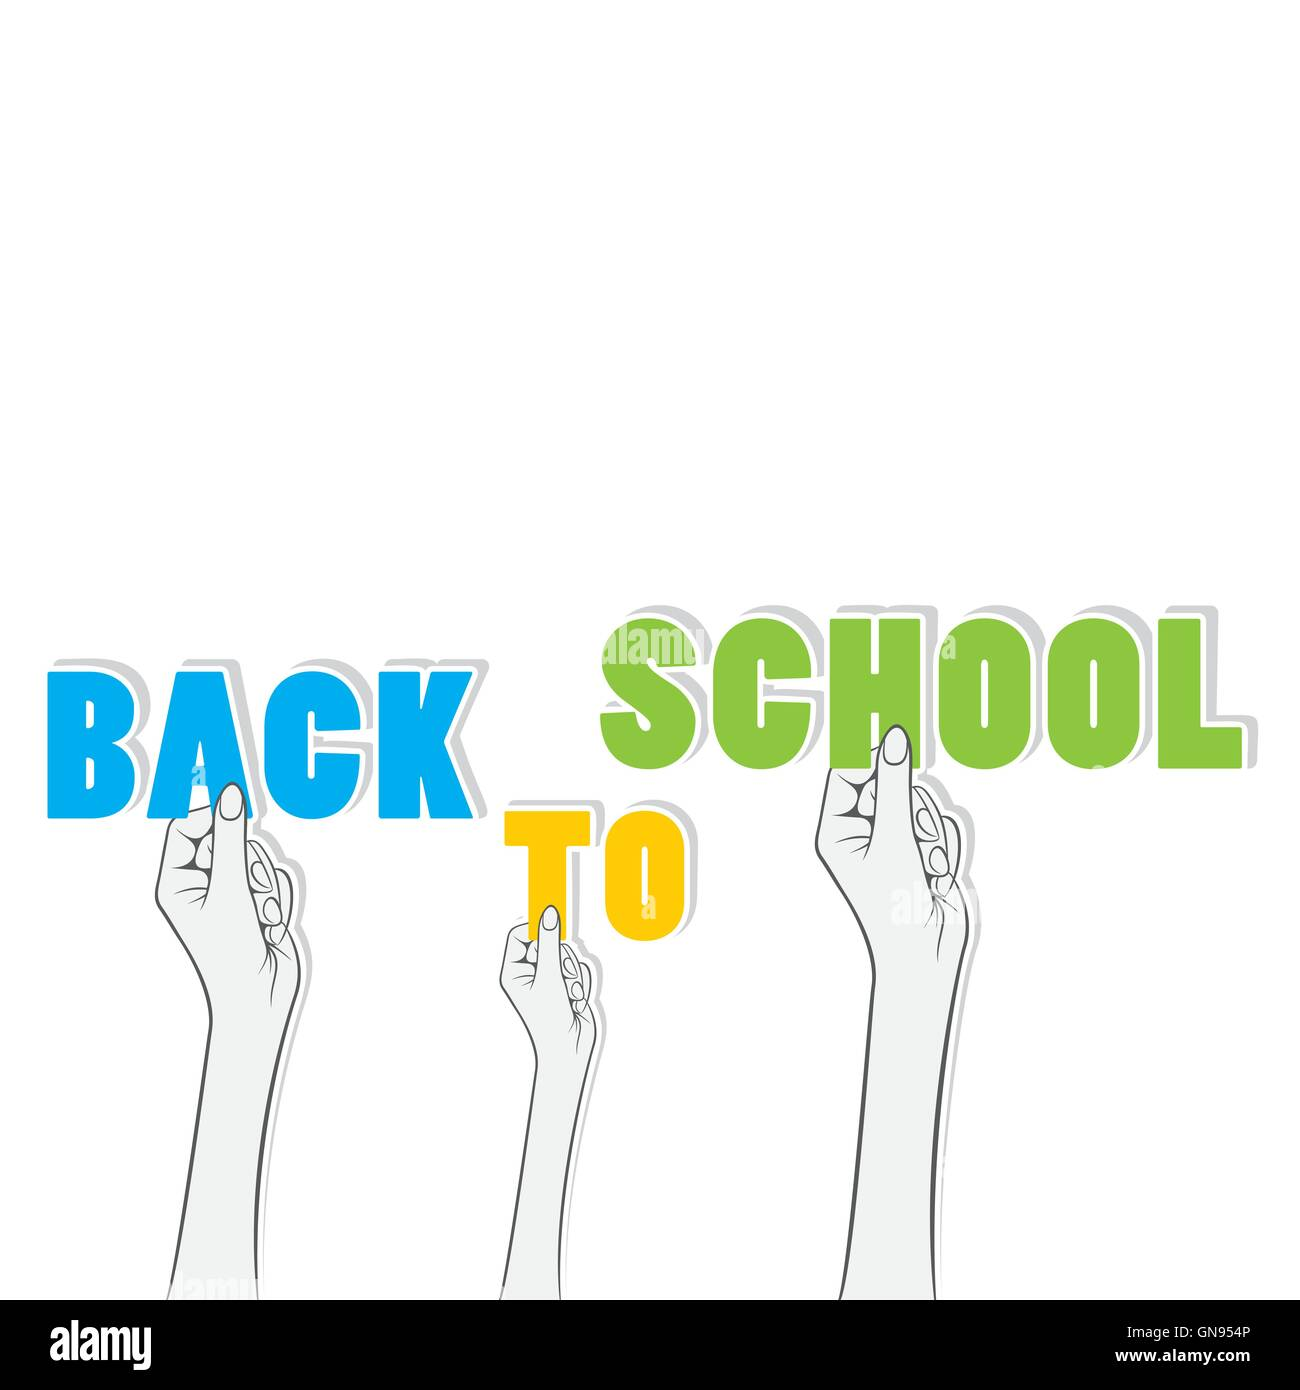 back to school word hold in hand concept design - Stock Image